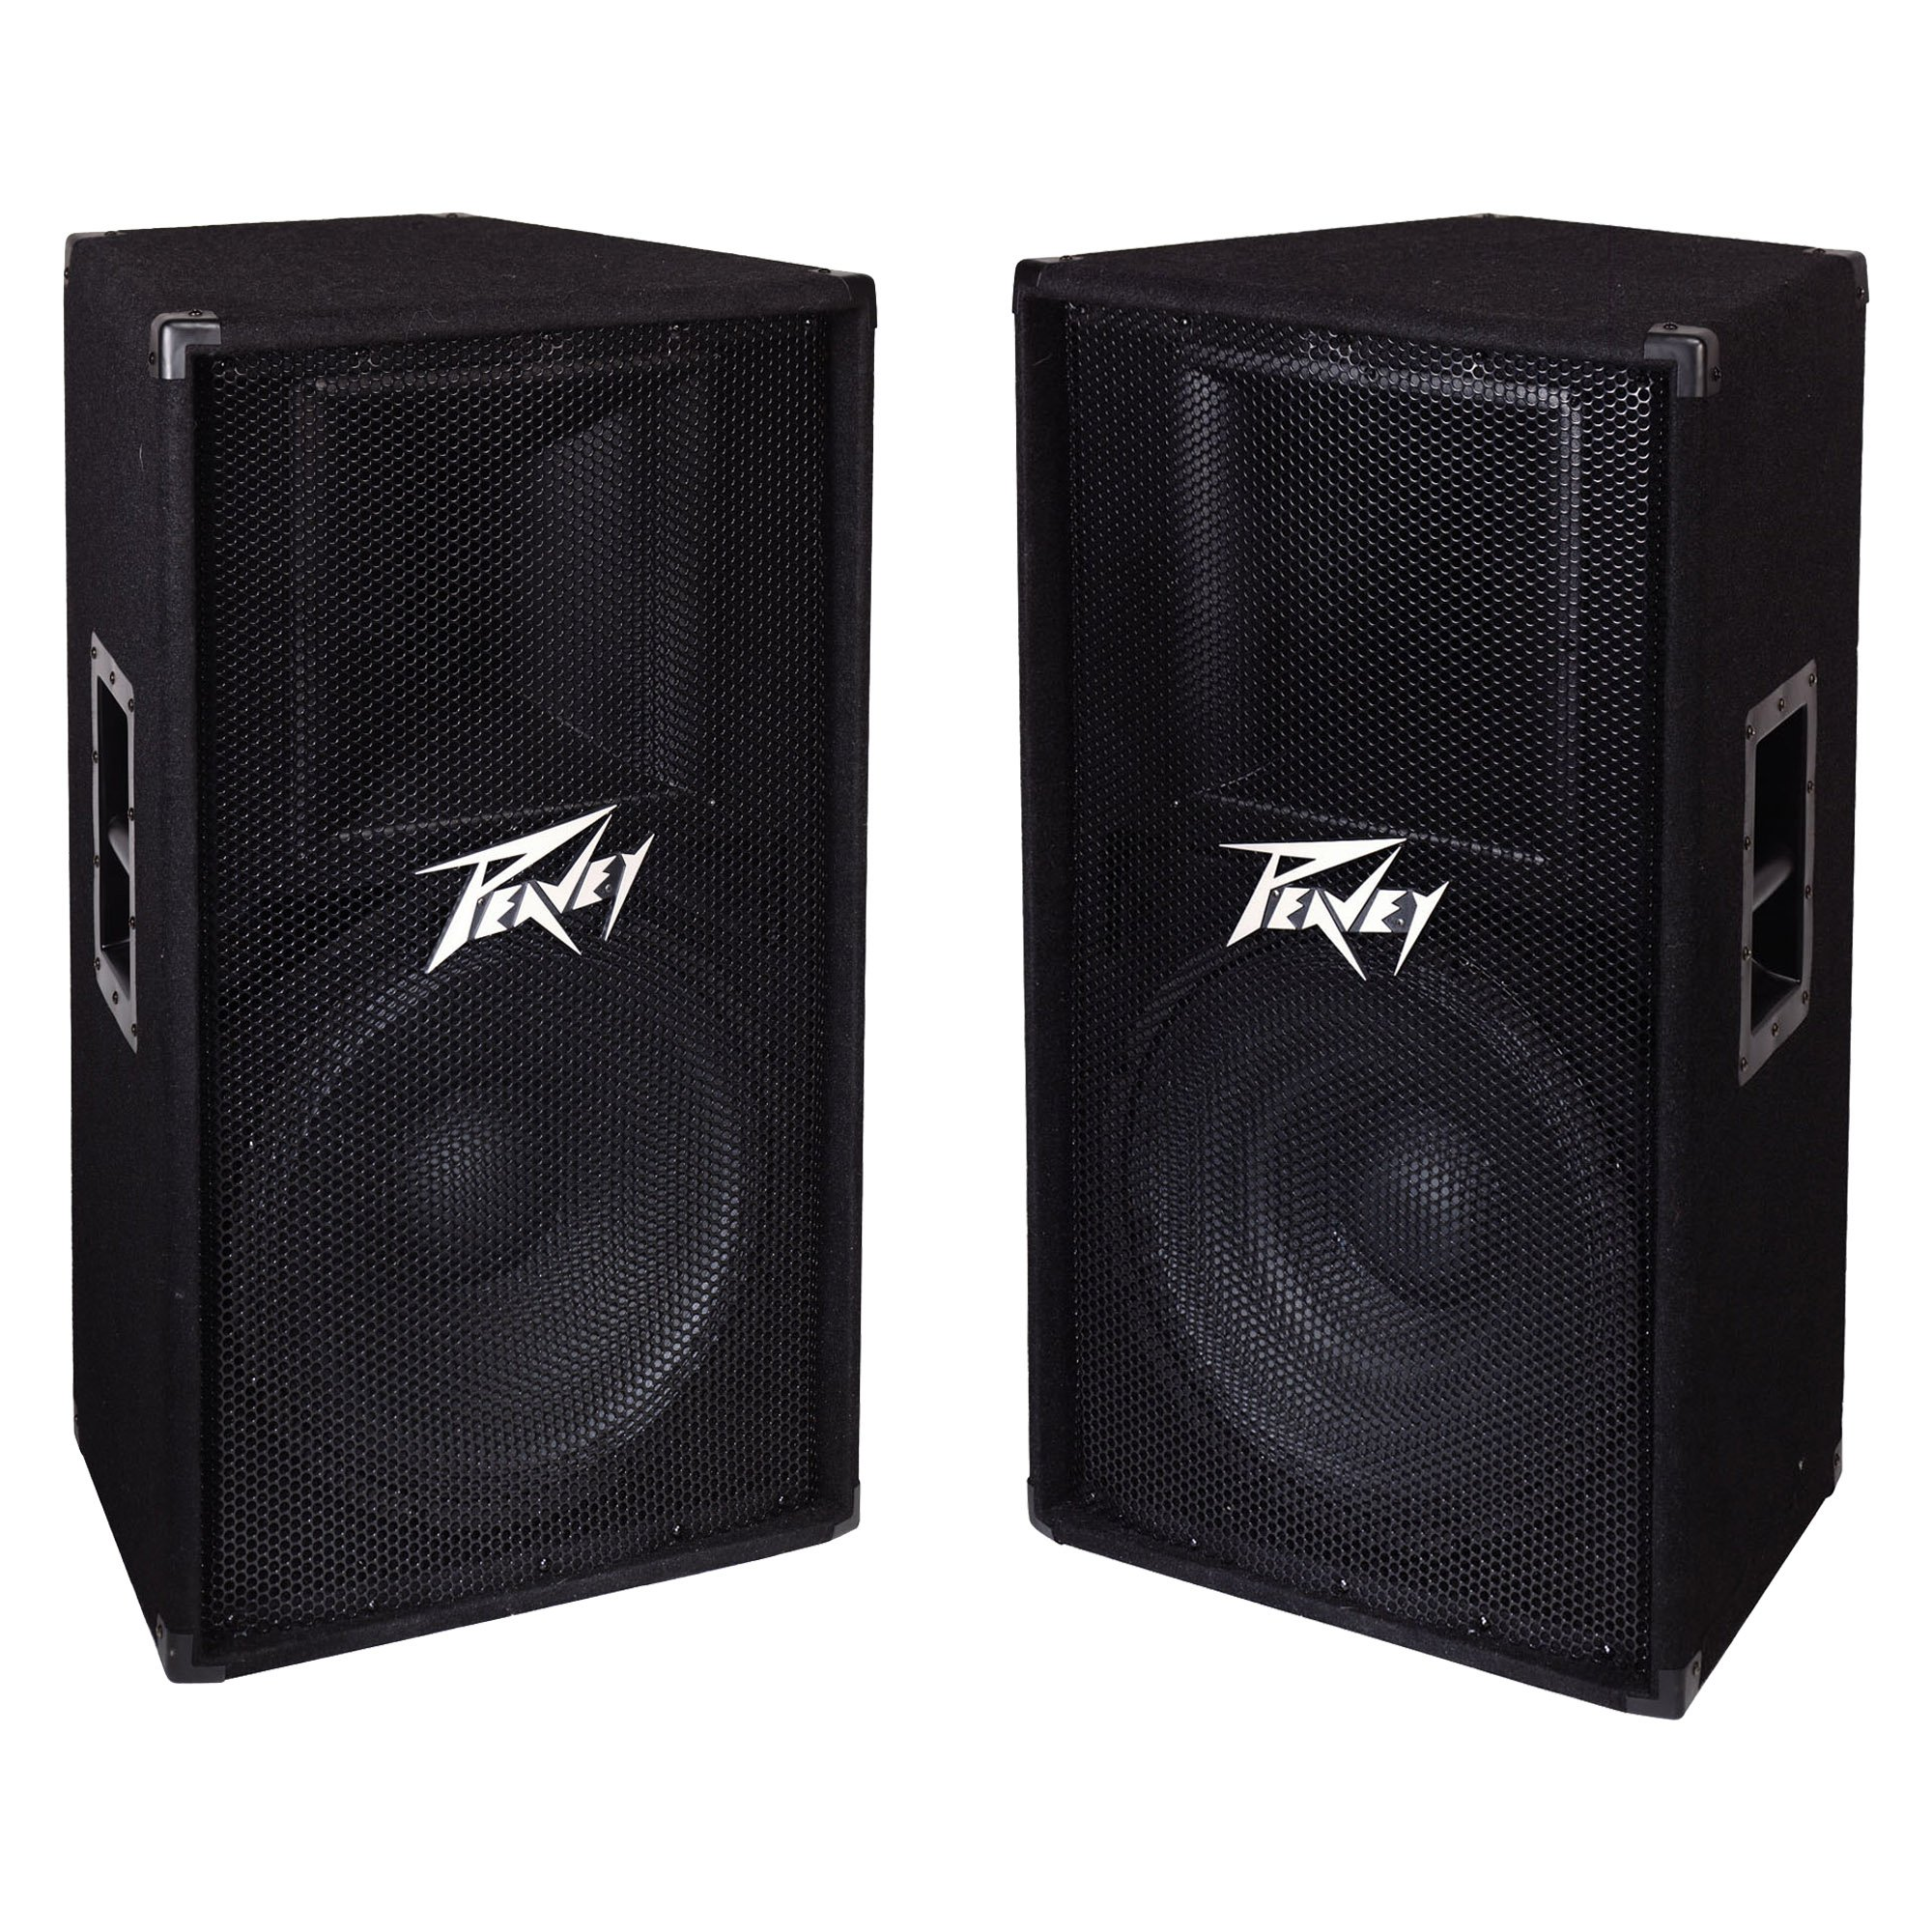 Peavey PV 115 2-Way 15'' 800W Active Pro DJ Live Sound Speaker System (2 Pack)